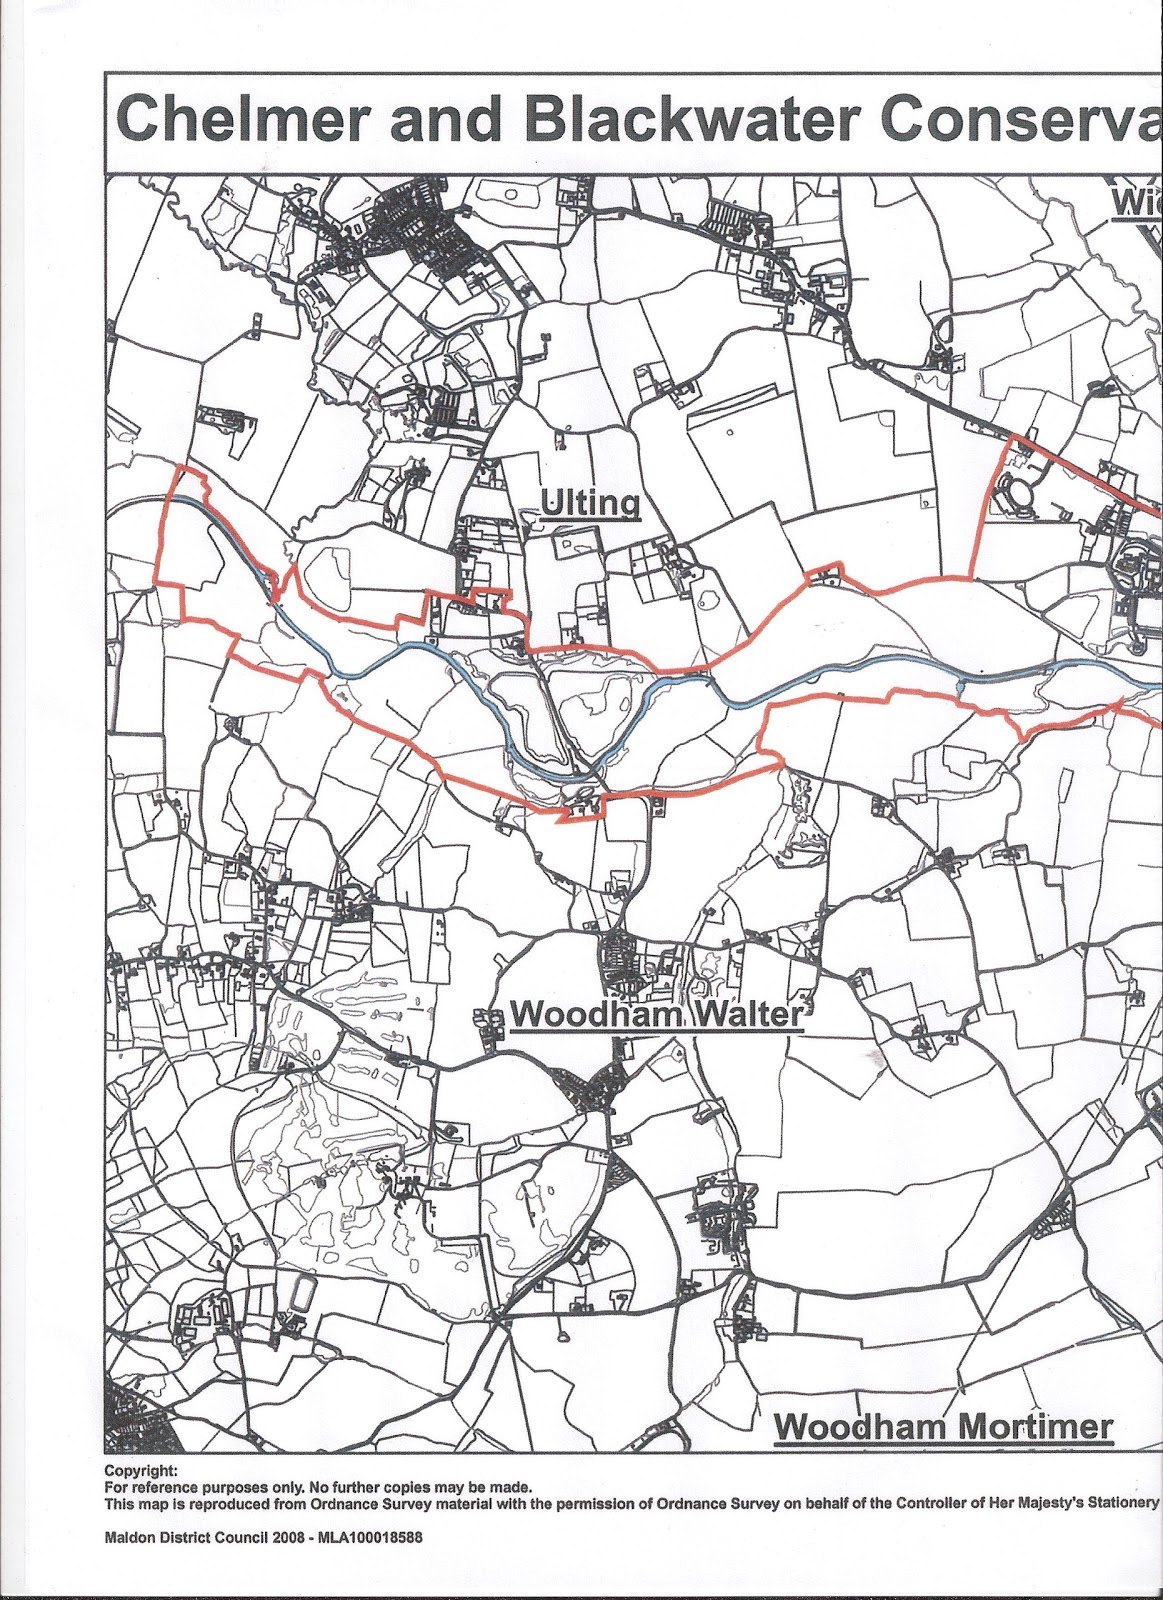 Ulting and Langford Trees: Chelmer and Blackwater